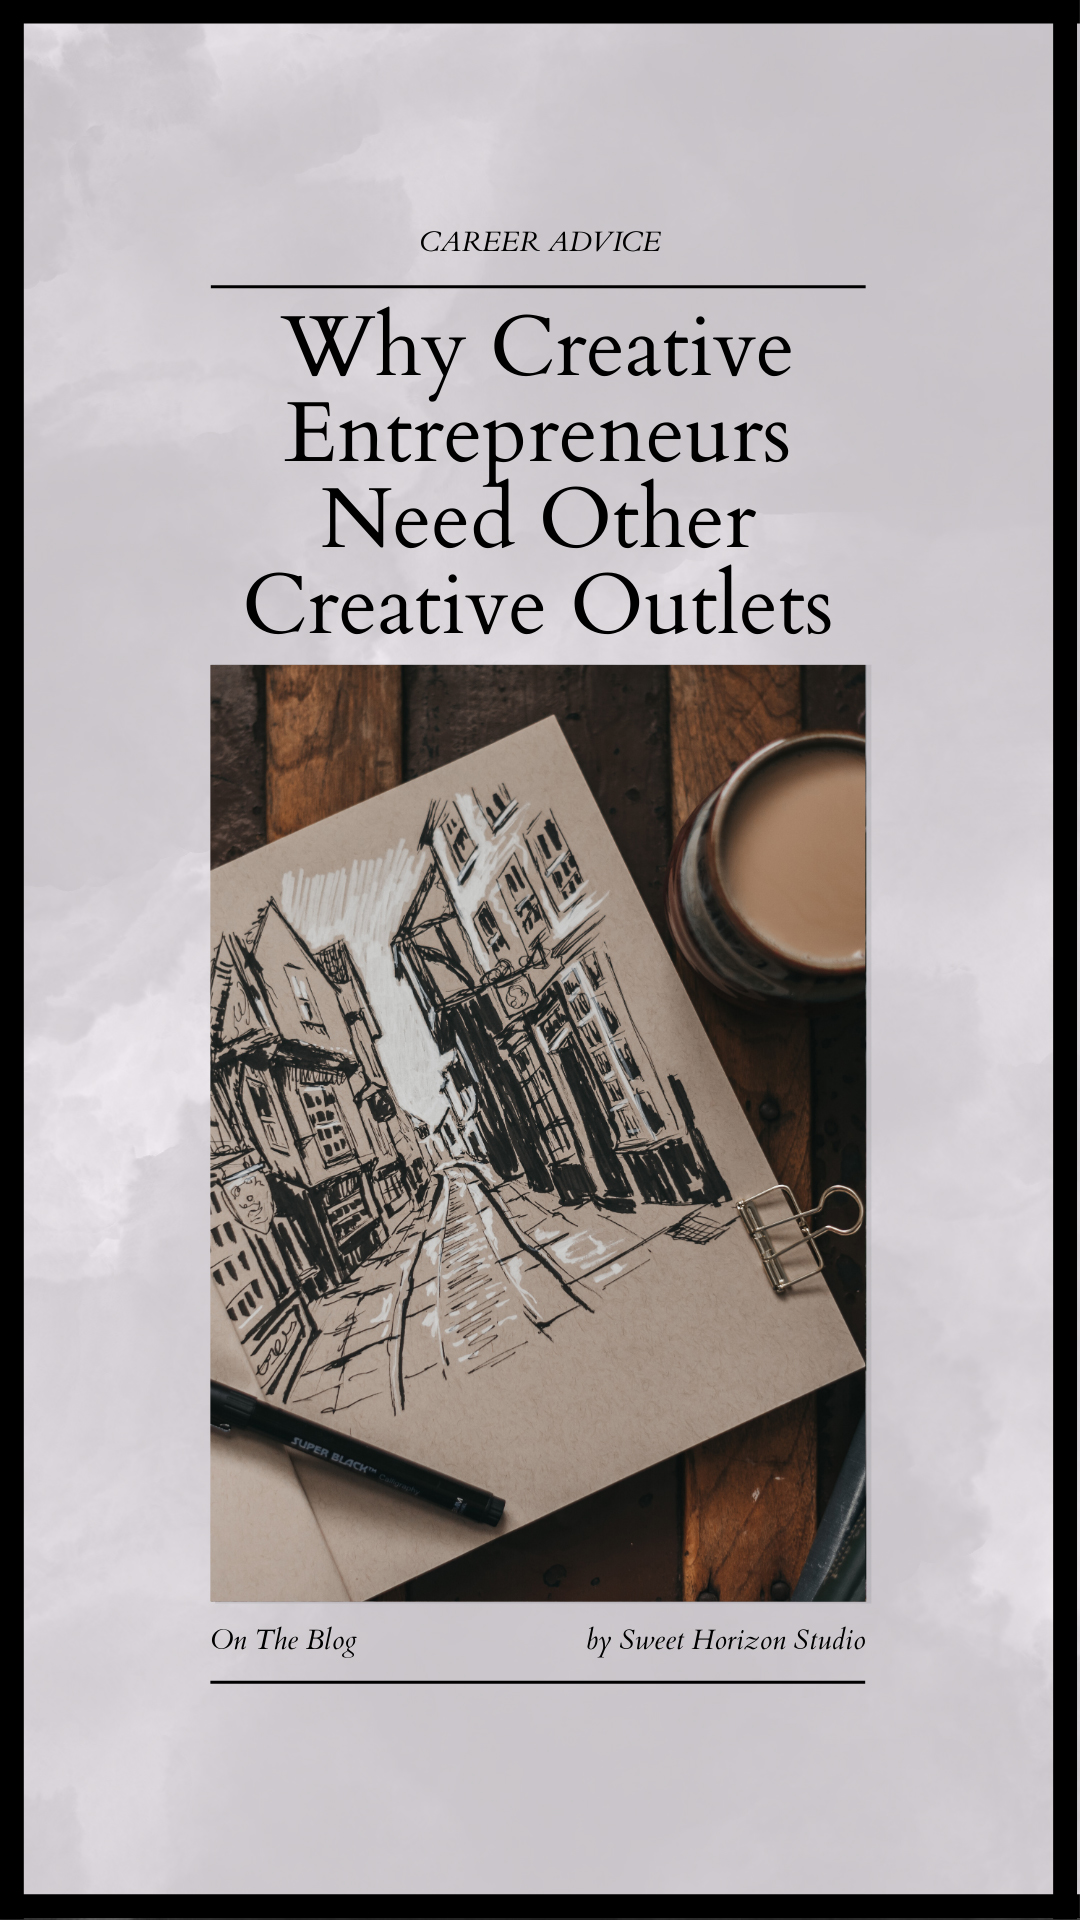 Why Creative Entrepreneurs Need Other Creative Outlets from www.sweethorizonblog.com